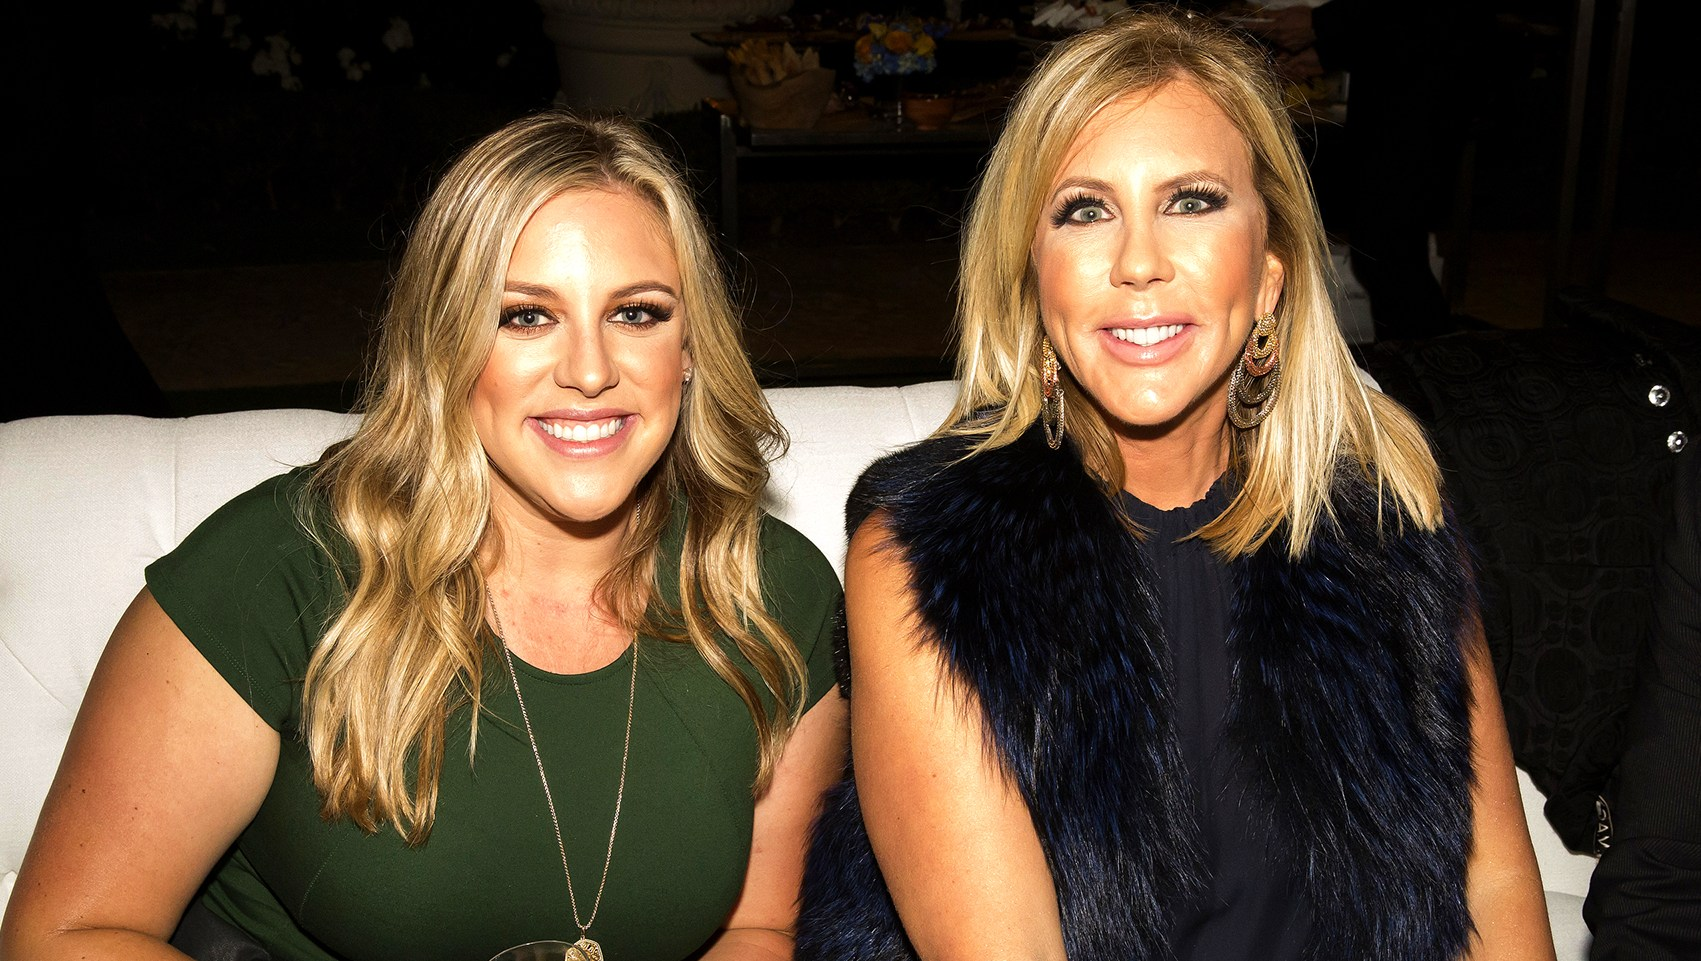 Vicki Gunvalson's Daughter, Briana Culberson, Shares Before and After Keto Photos: 'I've Lost 45 Lbs'